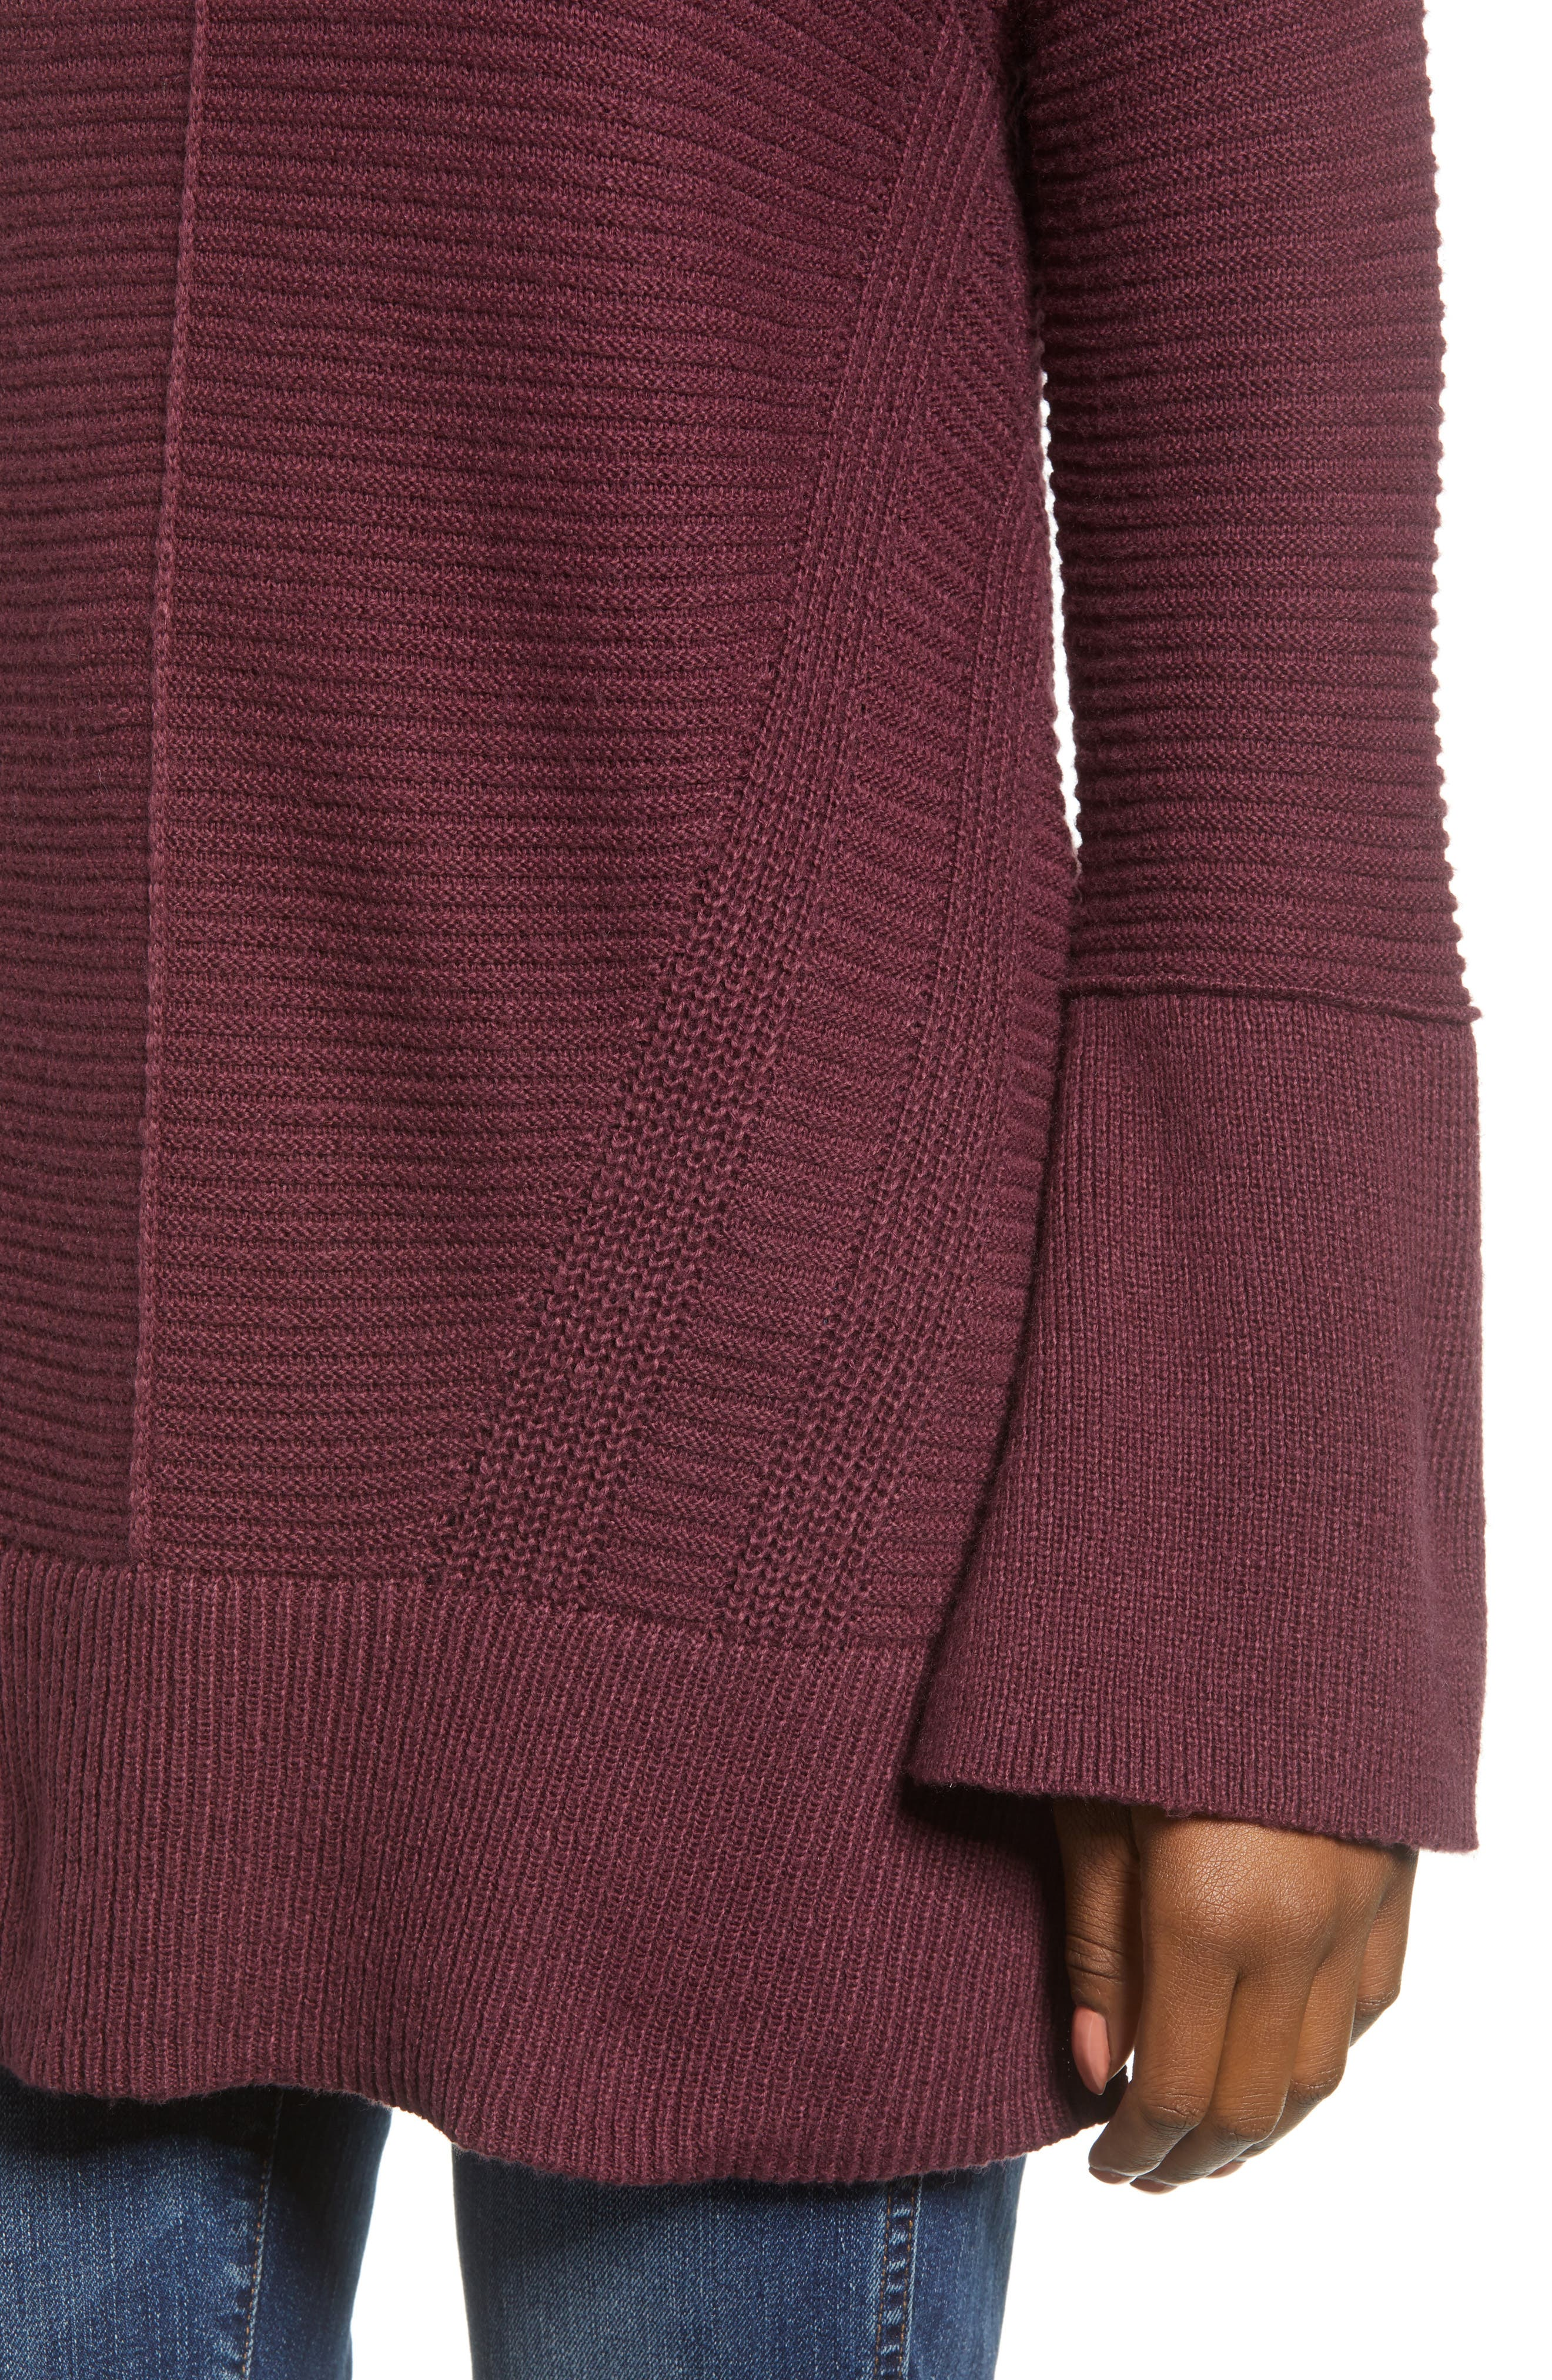 Ribbed Turtleneck Tunic Sweater,                             Alternate thumbnail 4, color,                             930